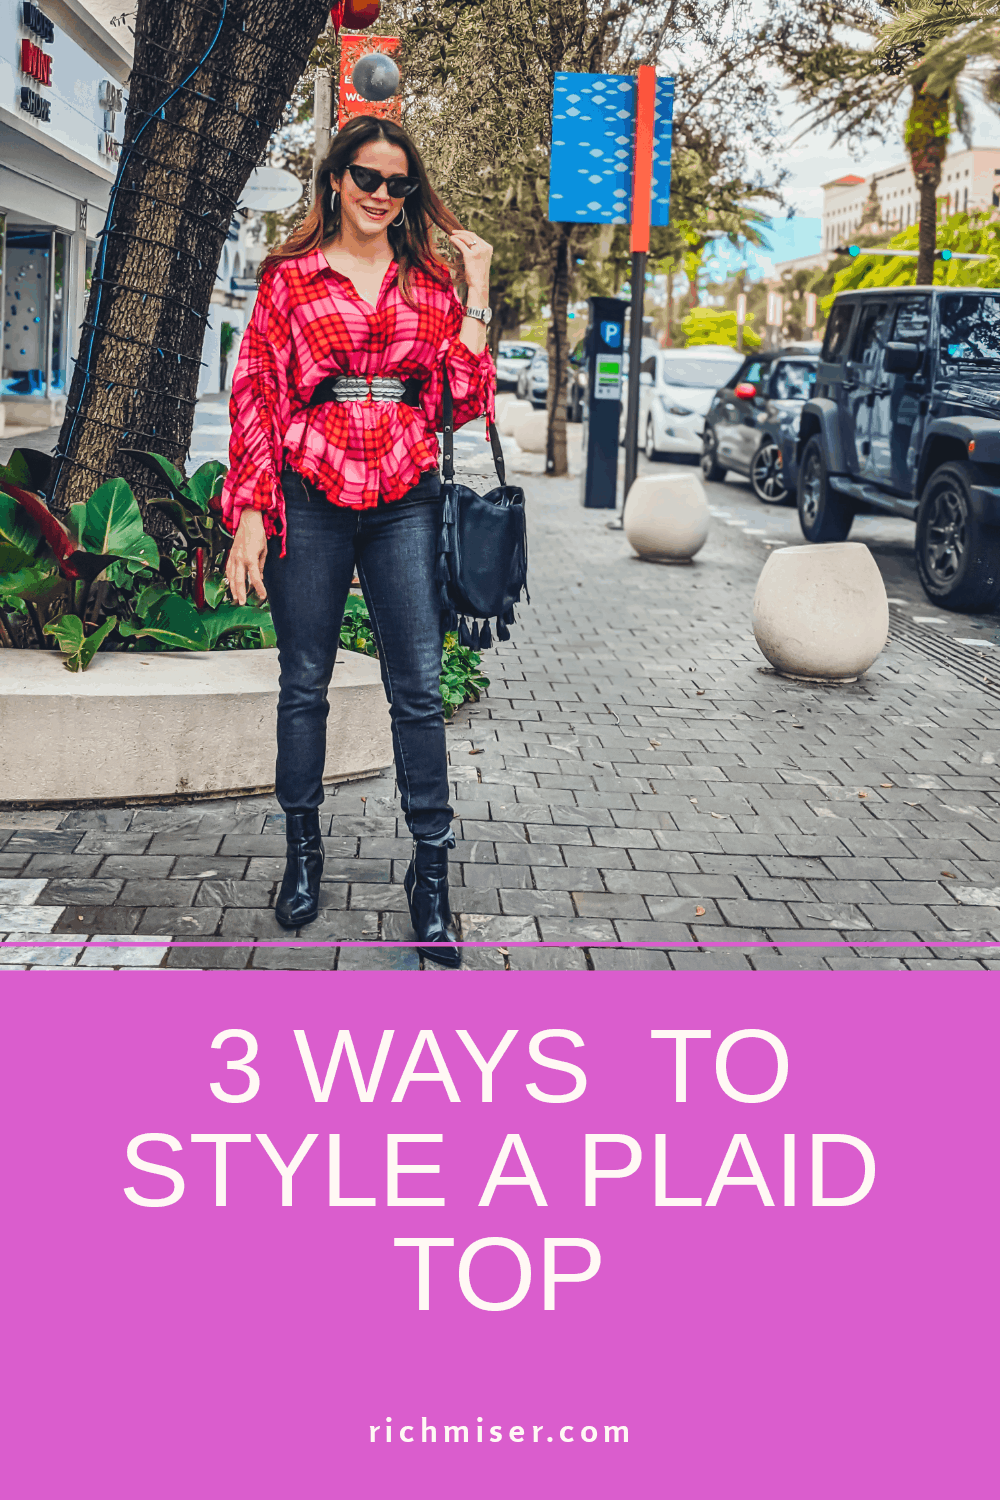 3 Ways to Style a Plaid Top